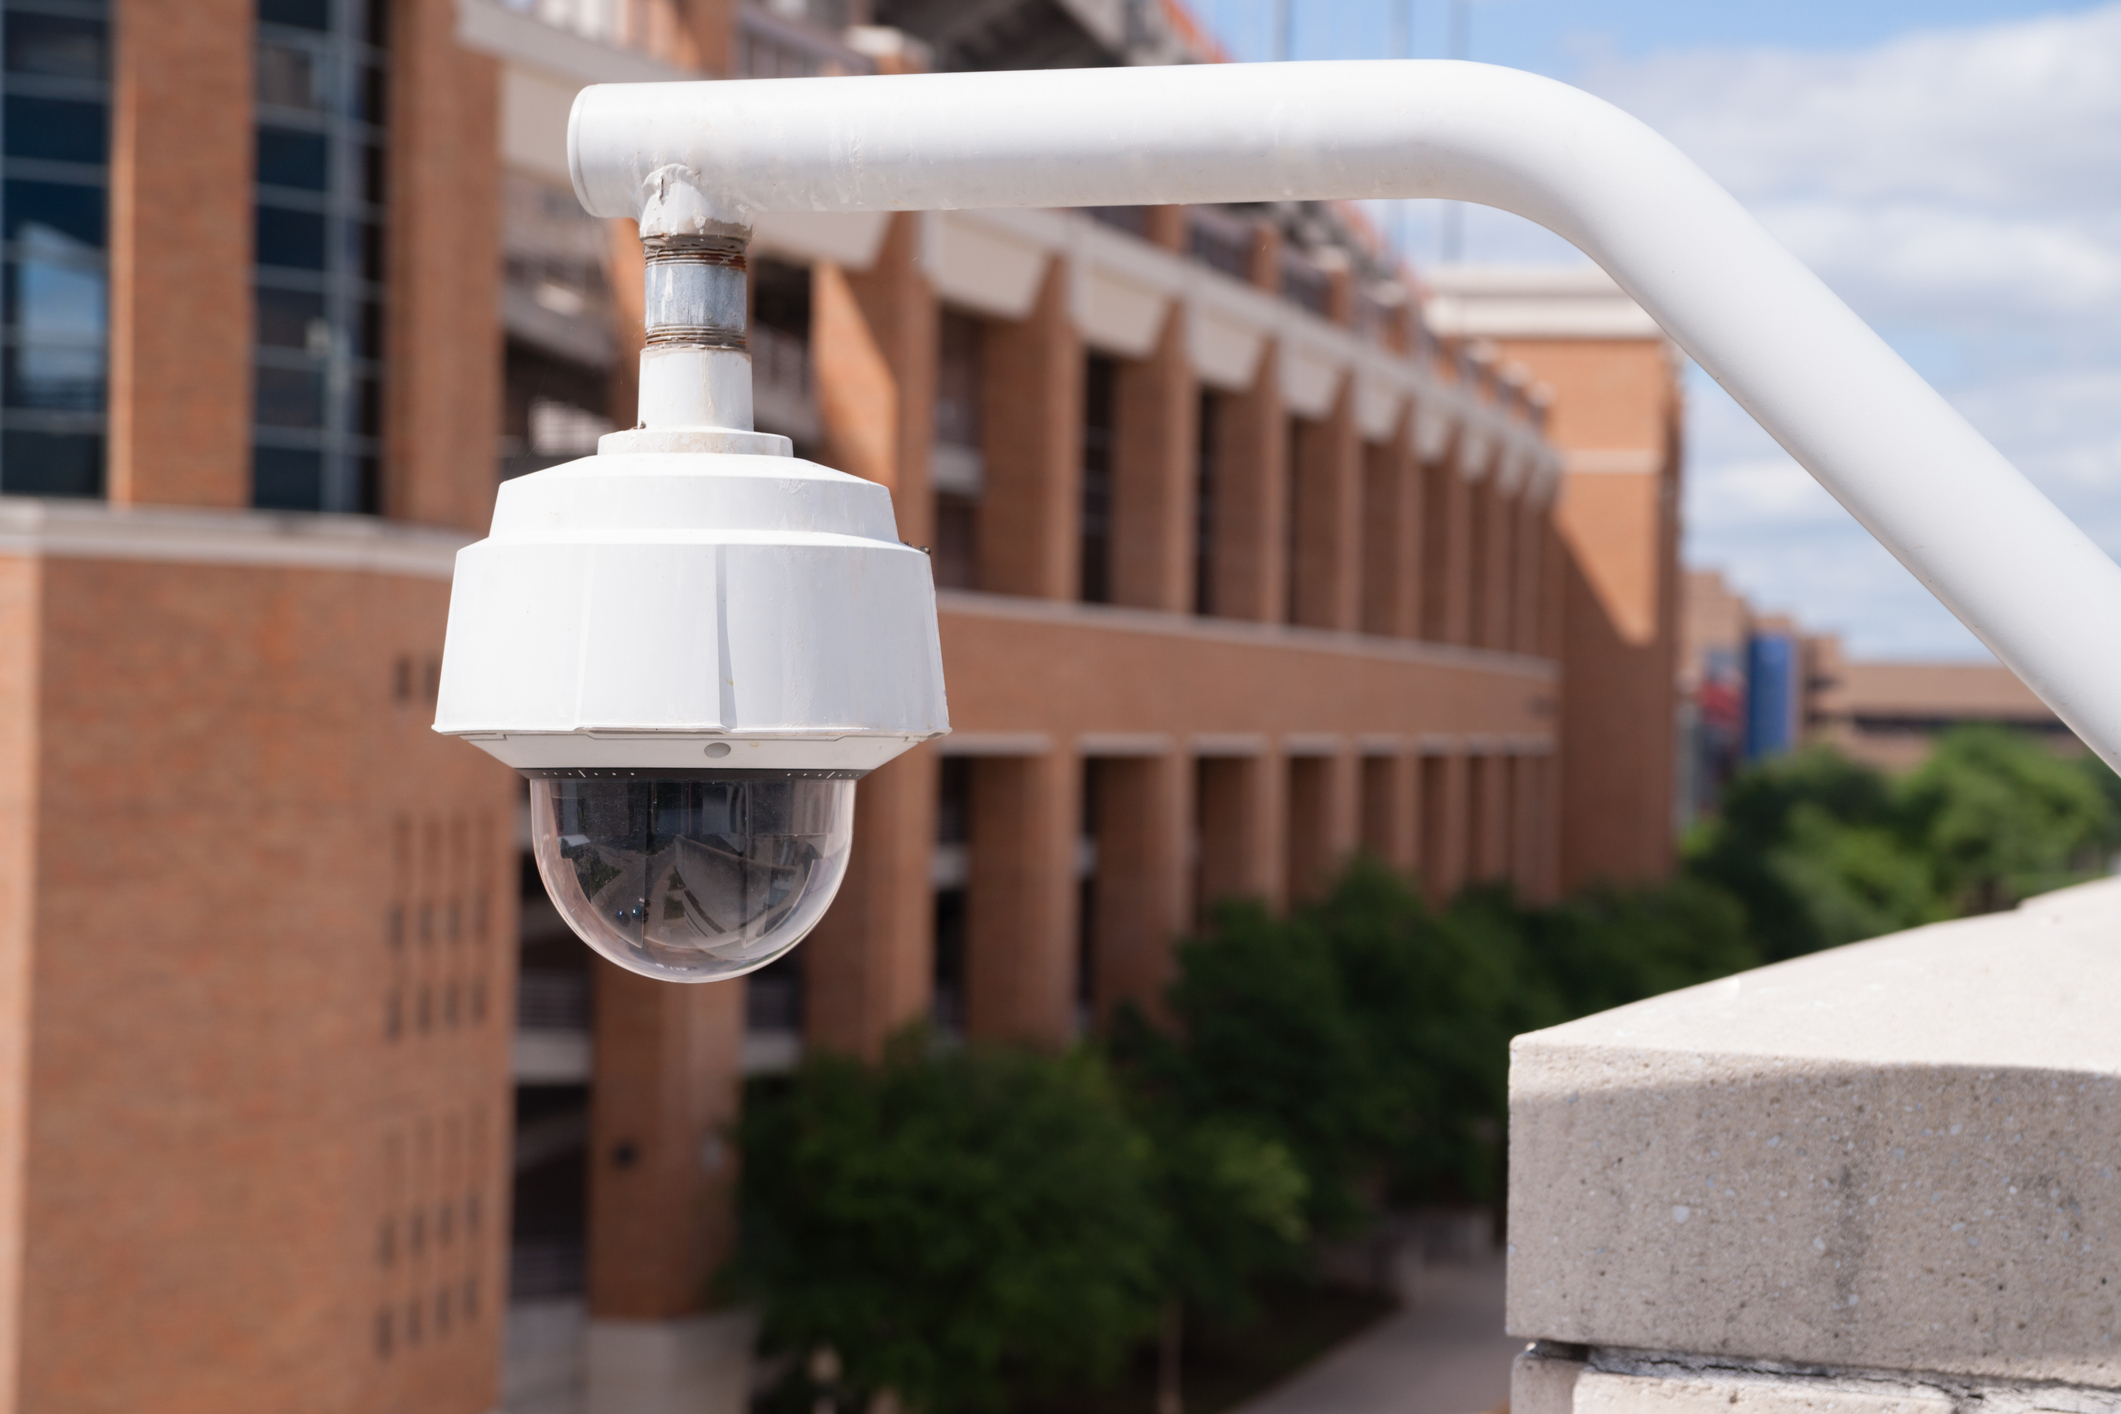 Protecting Your Campus and Community with Intelligent Video Security